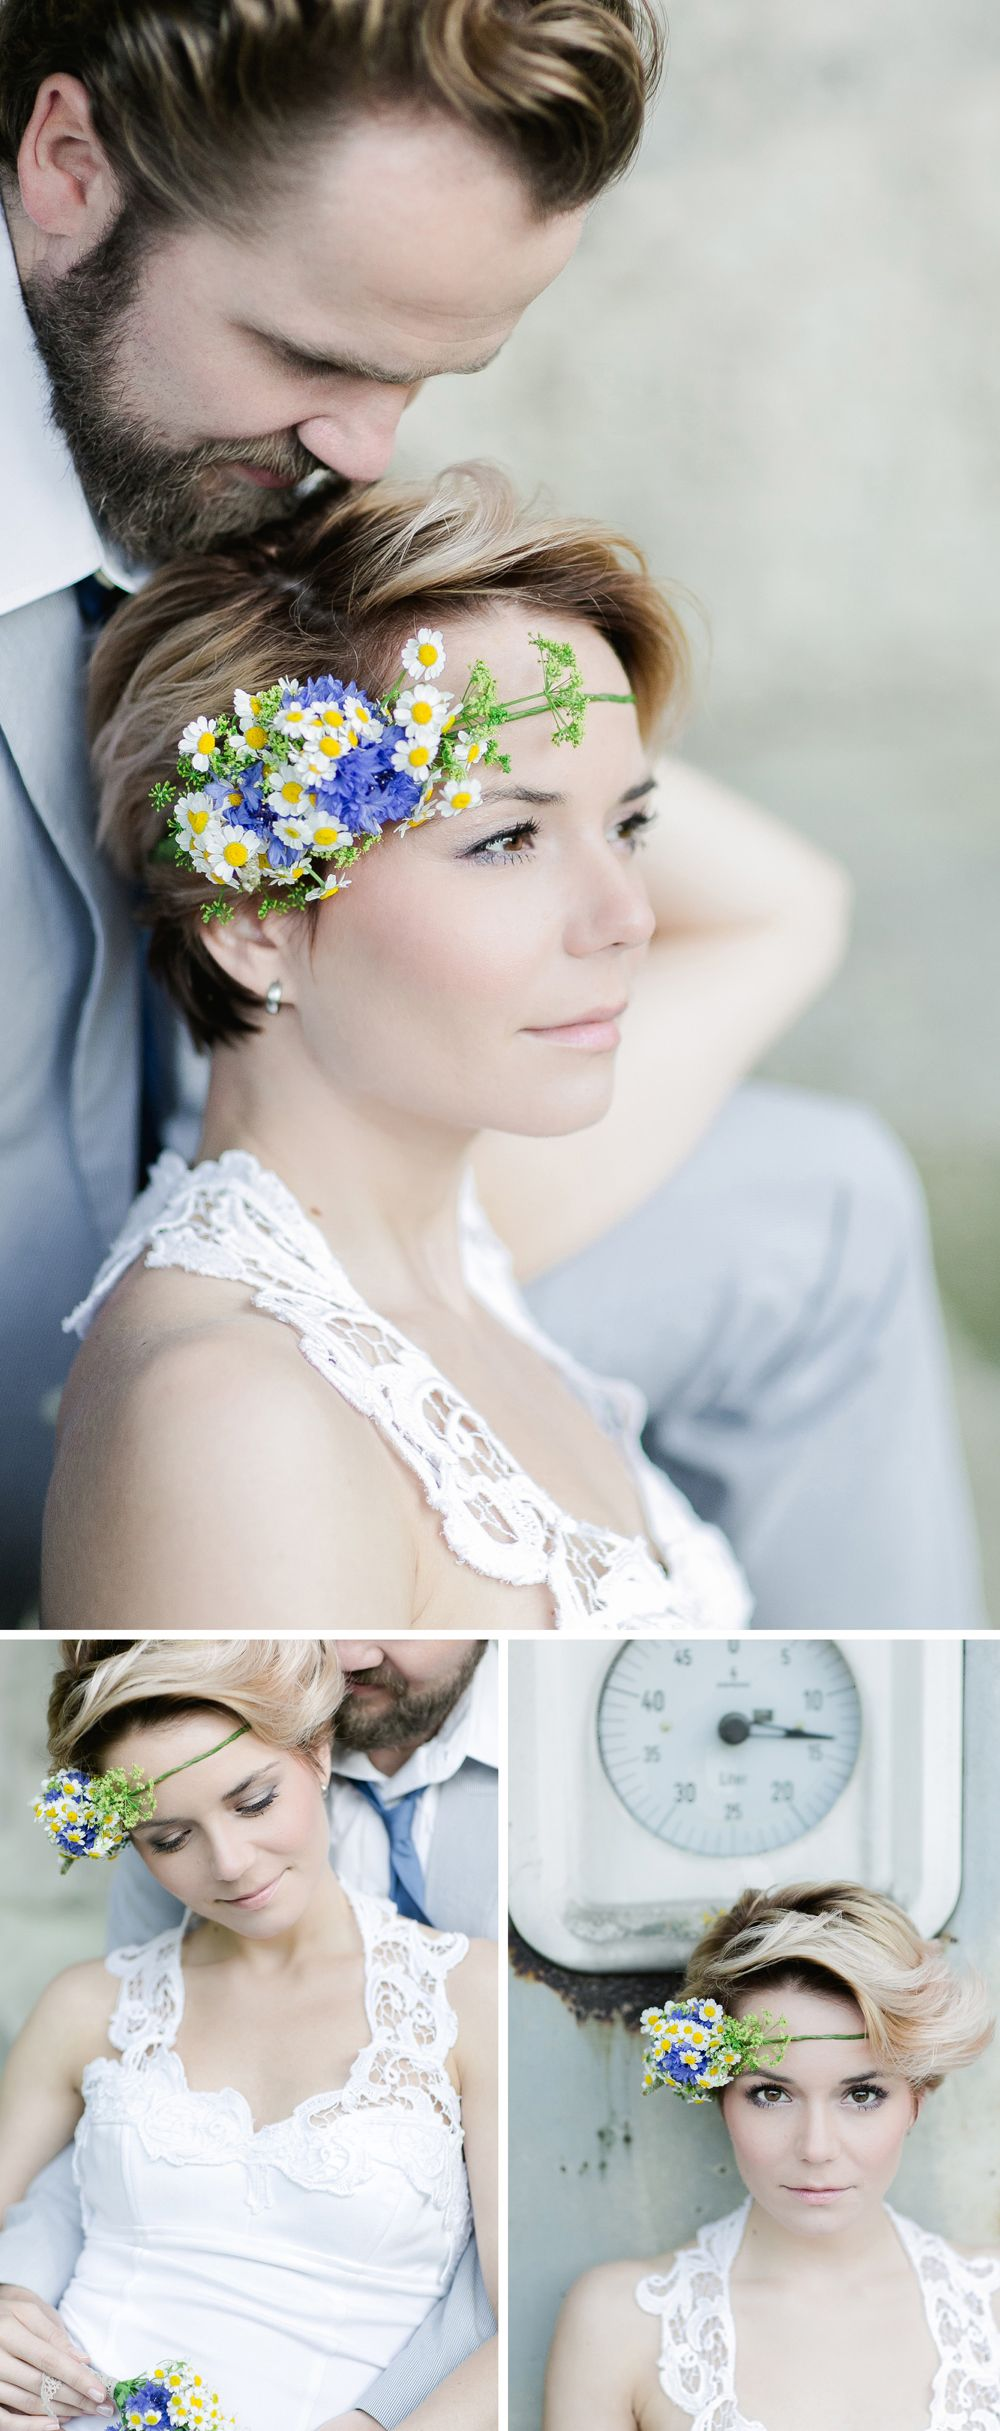 Short hair bride. minus the flower crown for either of us really ...